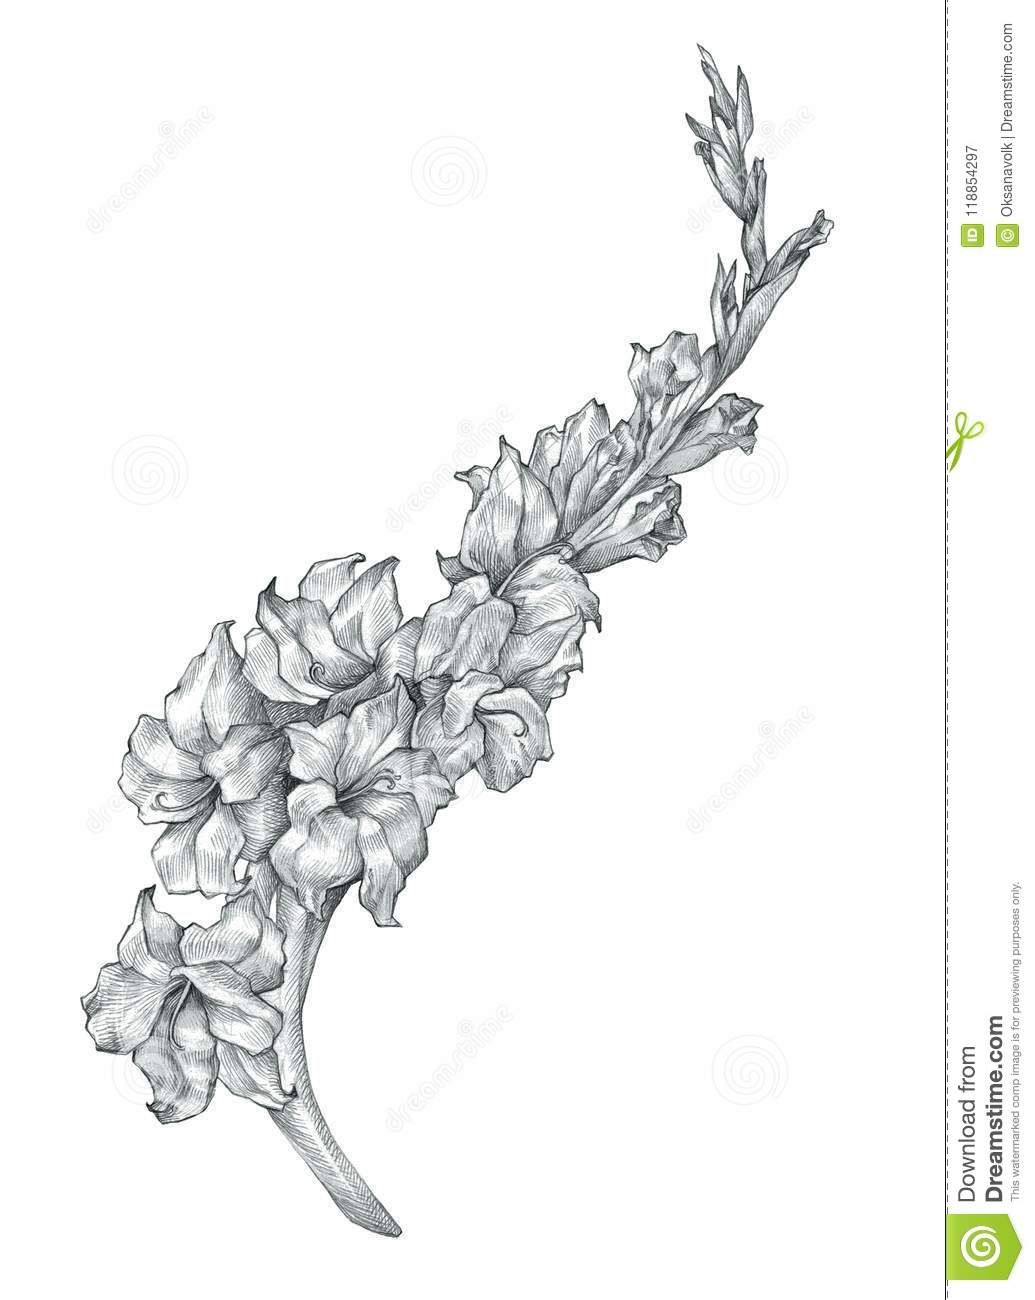 Beautiful Pencil Gladiolus Flower Drawing Sketch Illustration Stock Illustration Illustration Of Design Bla Flower Drawing Gladiolus Flower Drawing Sketches